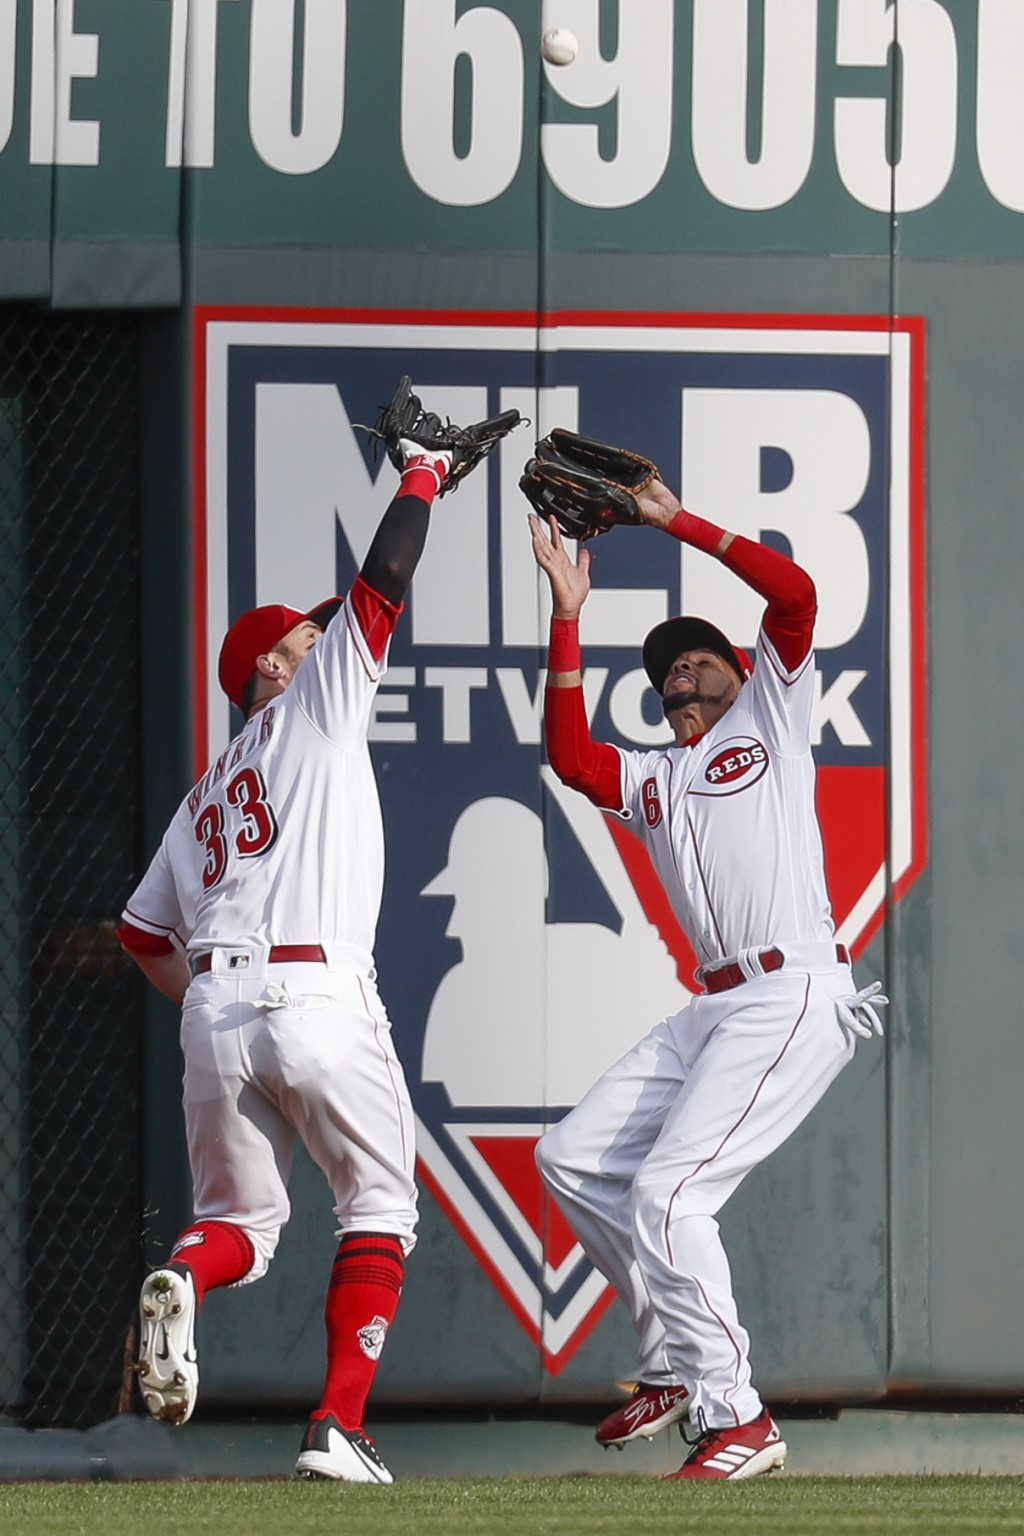 Cincinnati Reds center fielder Billy Hamilton, right, catches out Washington Nationals' Michael A. Taylor with bases loaded before colliding with righ...